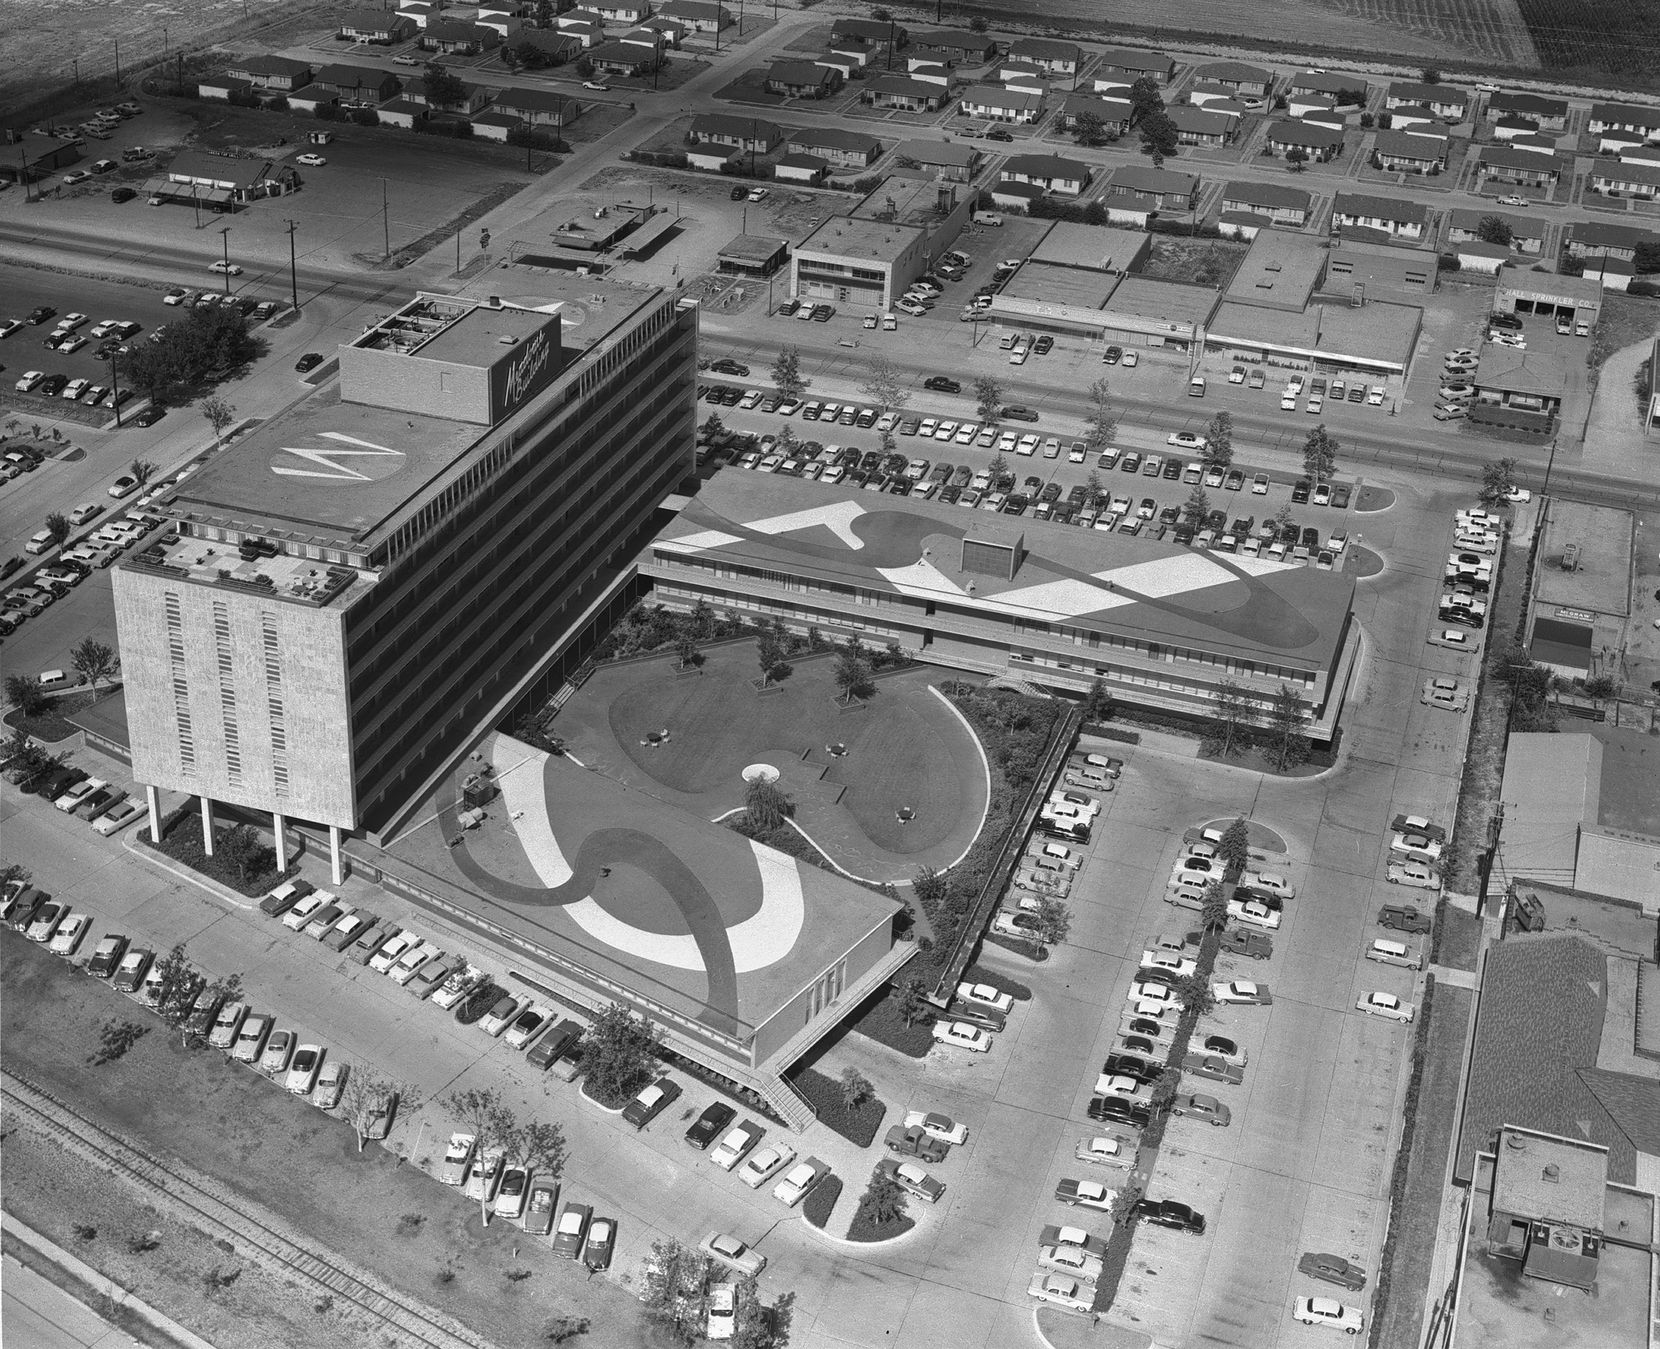 The Meadows Building as it looked in 1956, when it had two wings. The one along North Central Expressway was demolished in the 1980s.